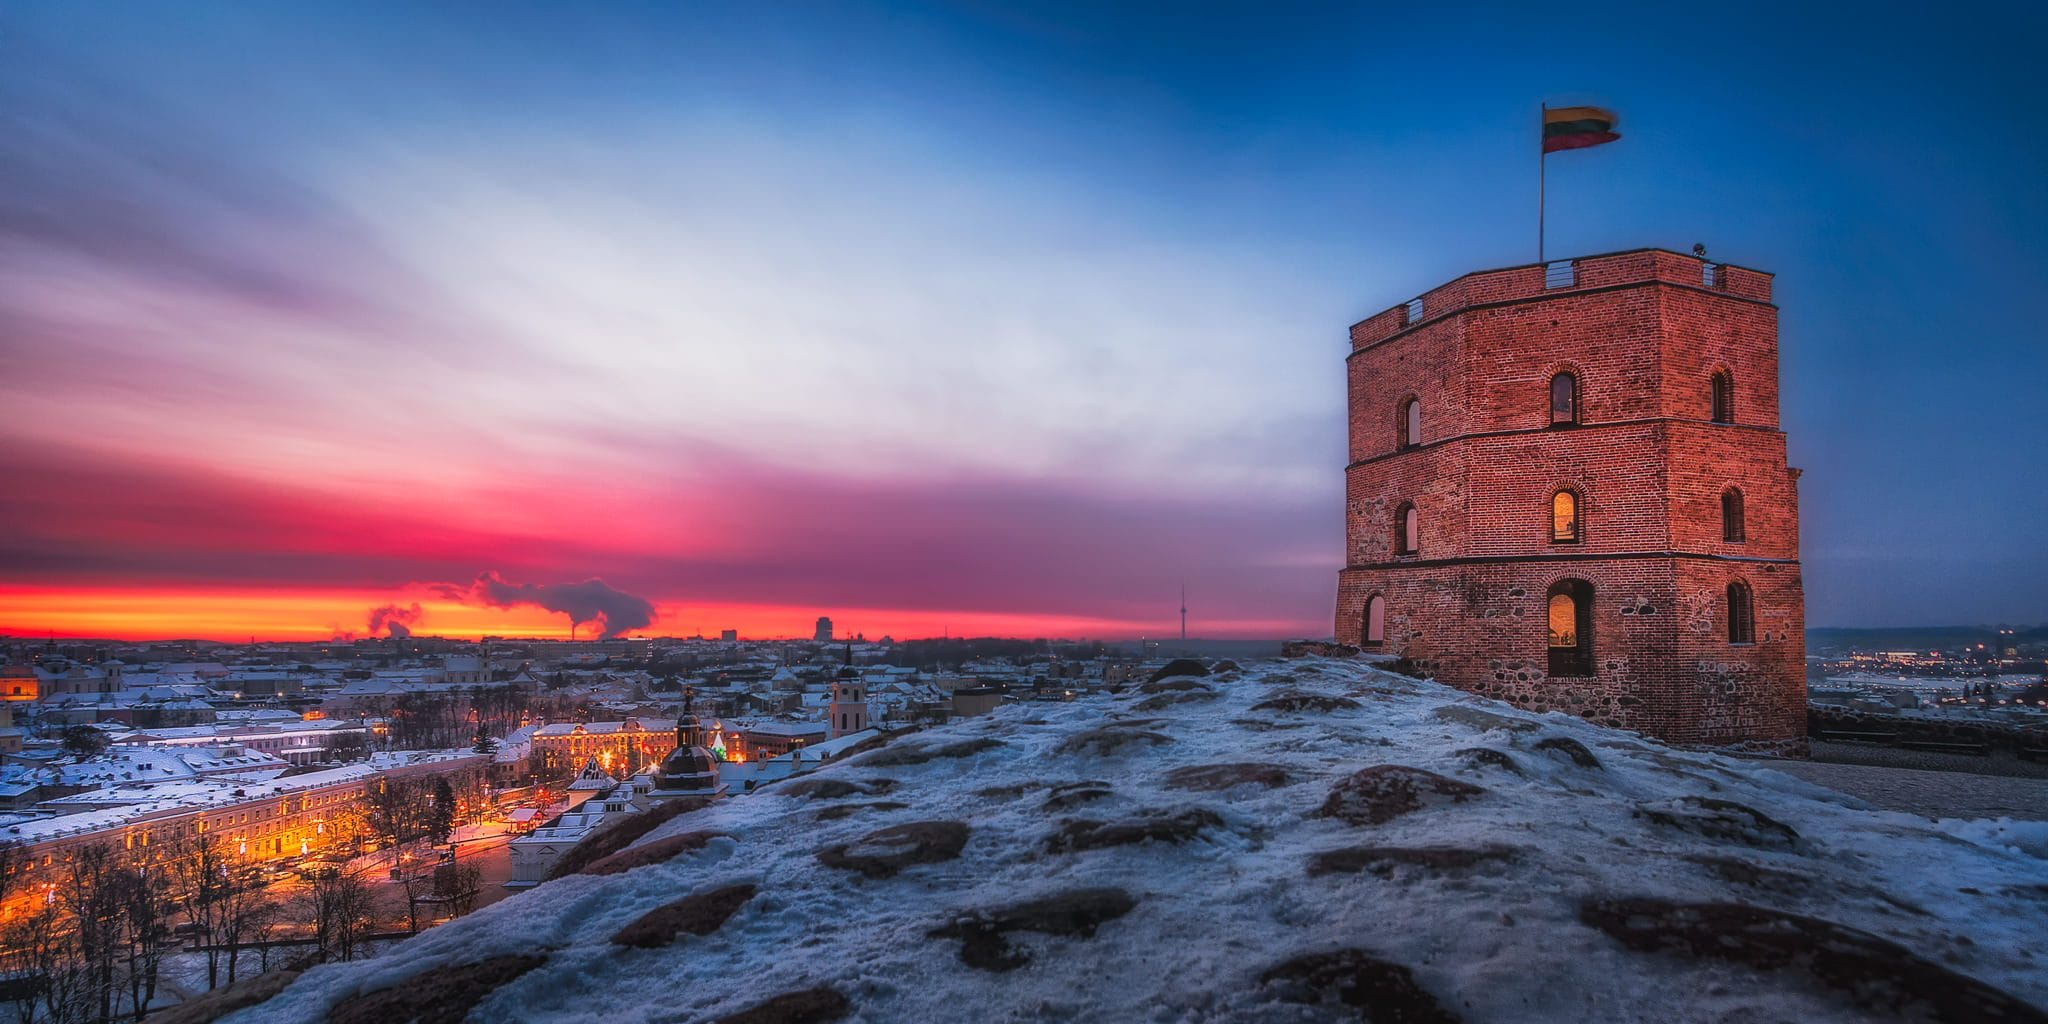 Panorama of Vilnius, Lithuania, with a focus on the Gedimias' Tower.